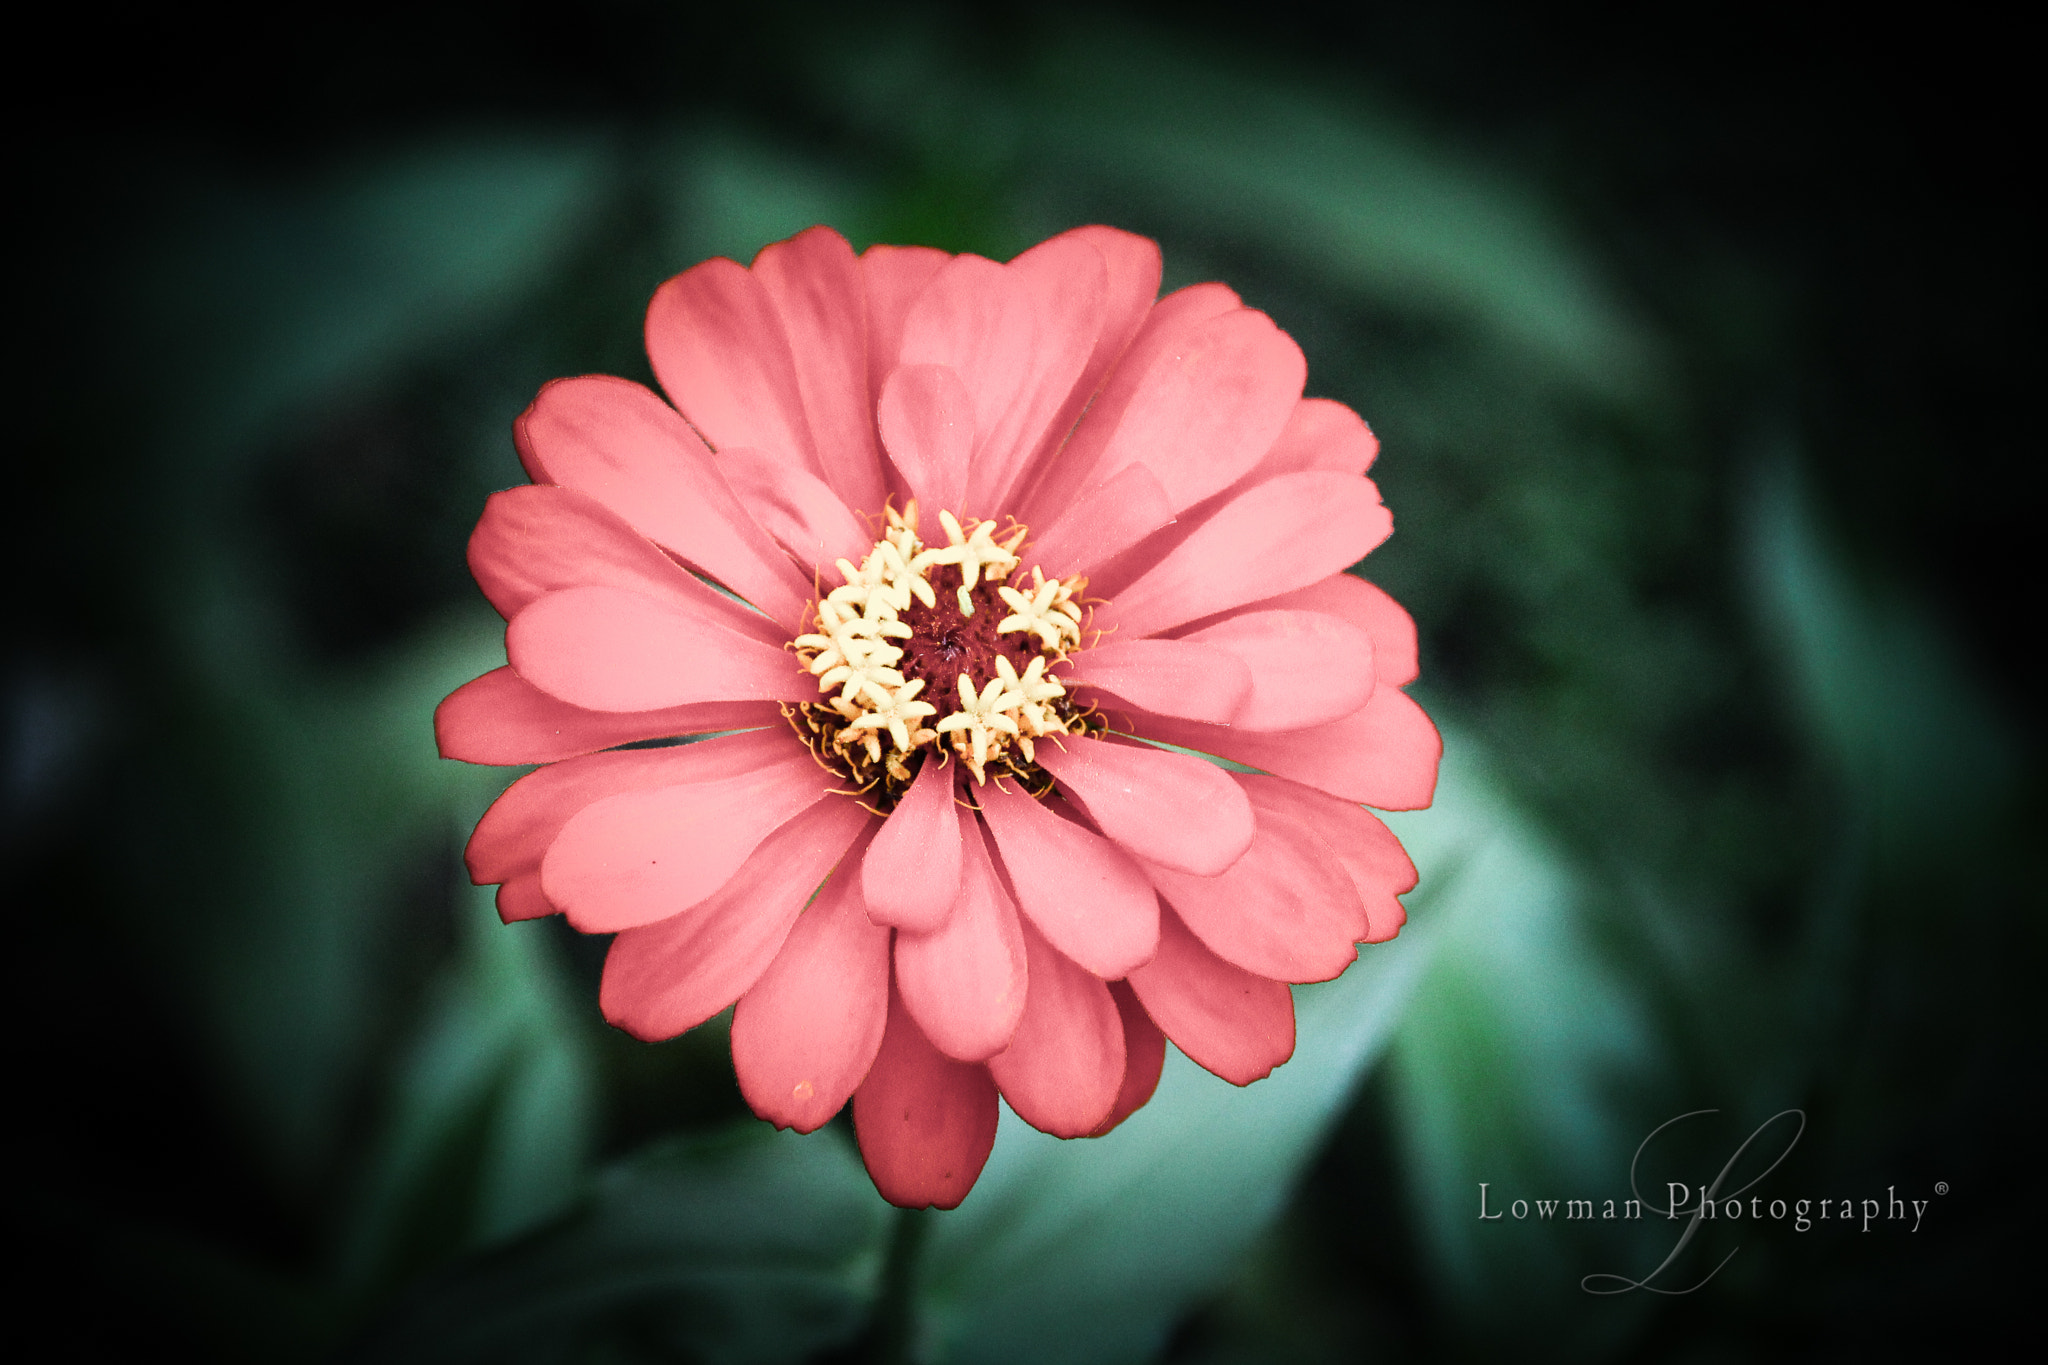 Photograph Garden Flower by Brian Lowman on 500px